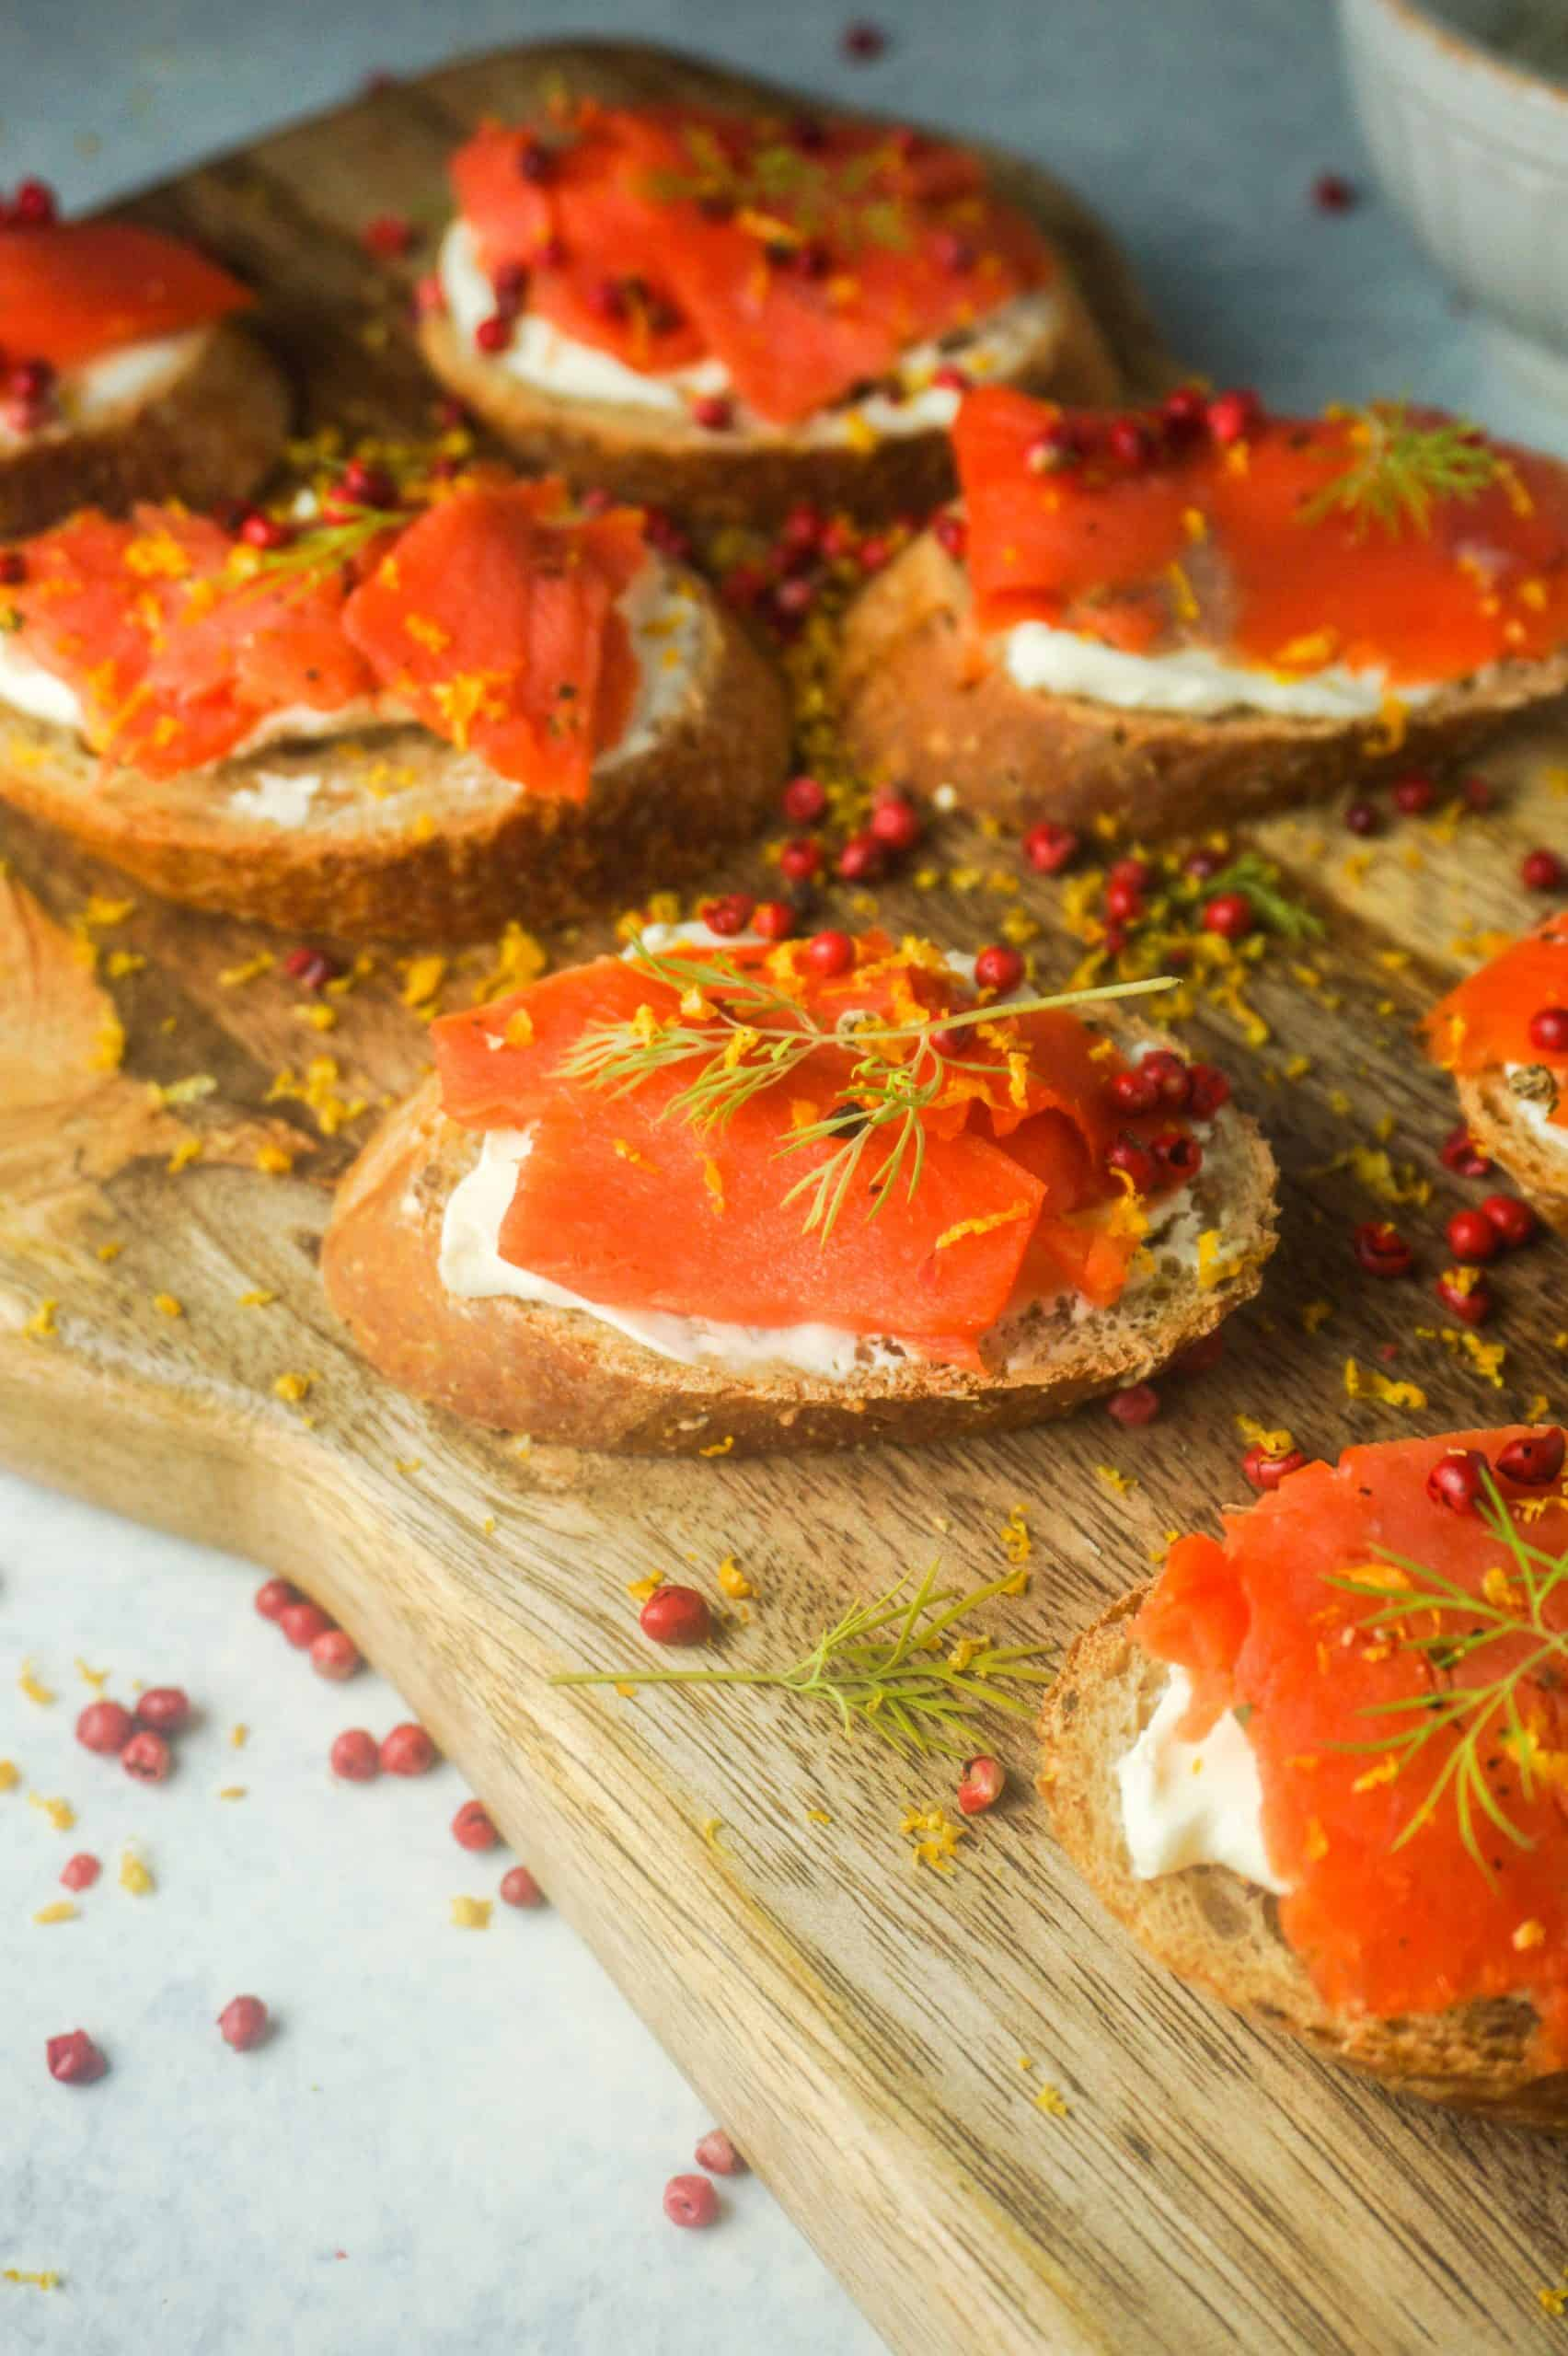 Close up of smoked salmon on wooden board with lemon and pink peppercorns